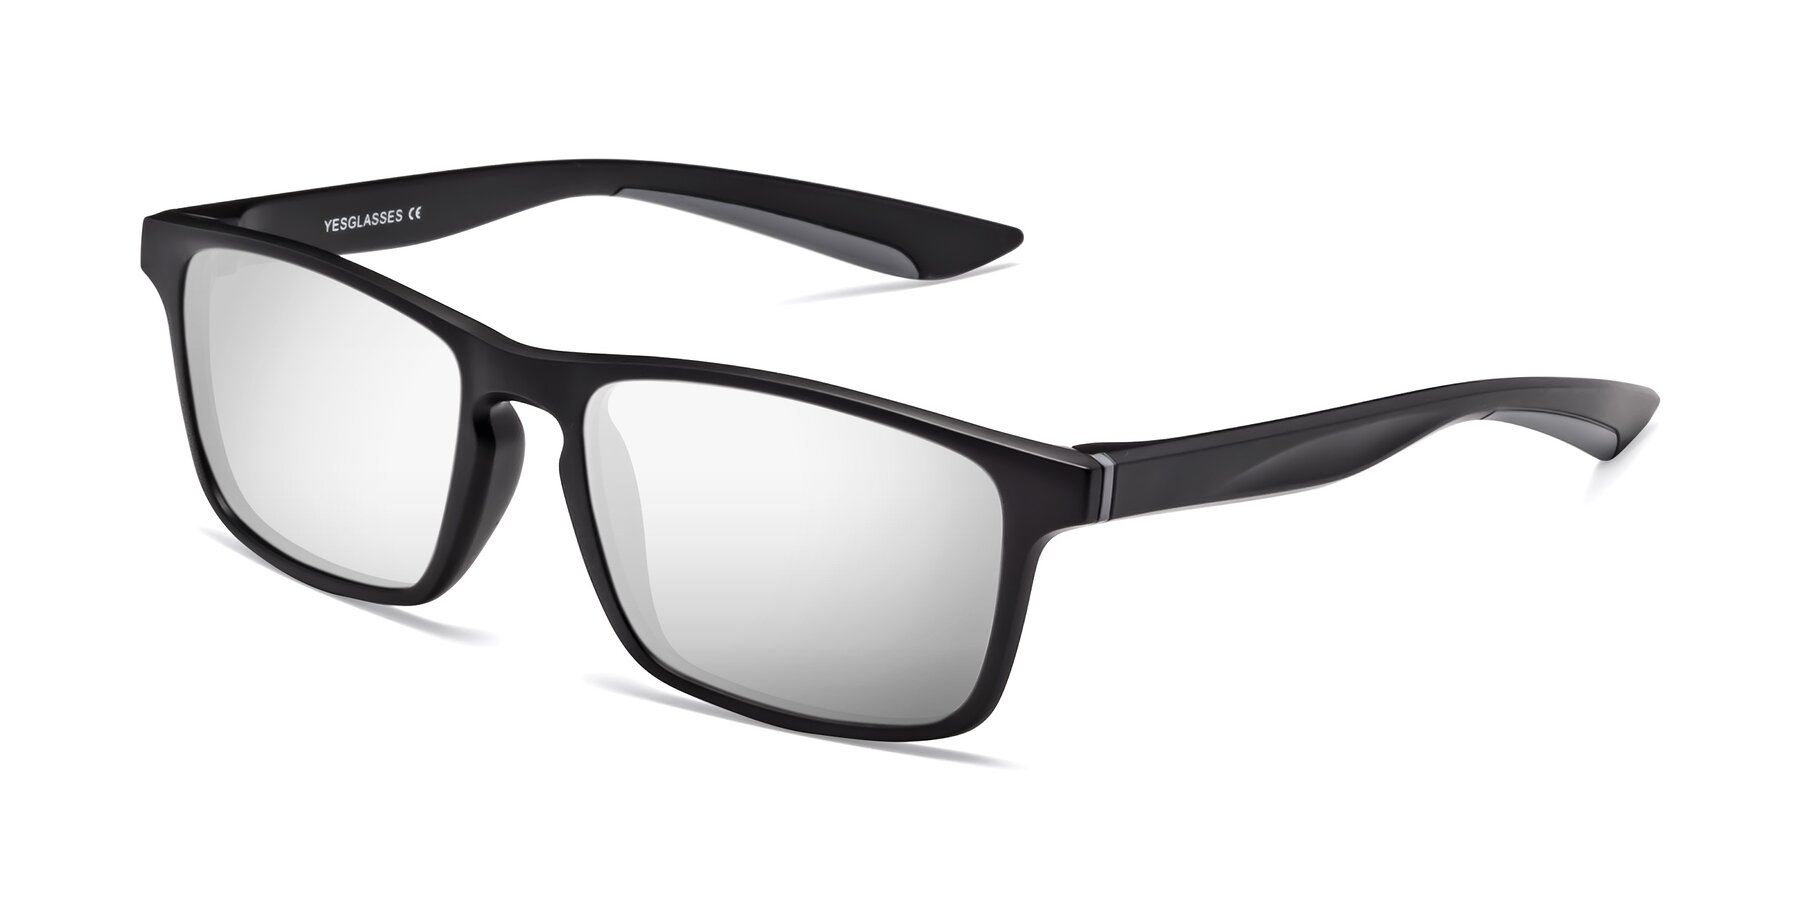 Angle of Passion in Matte Black-Gray with Silver Mirrored Lenses